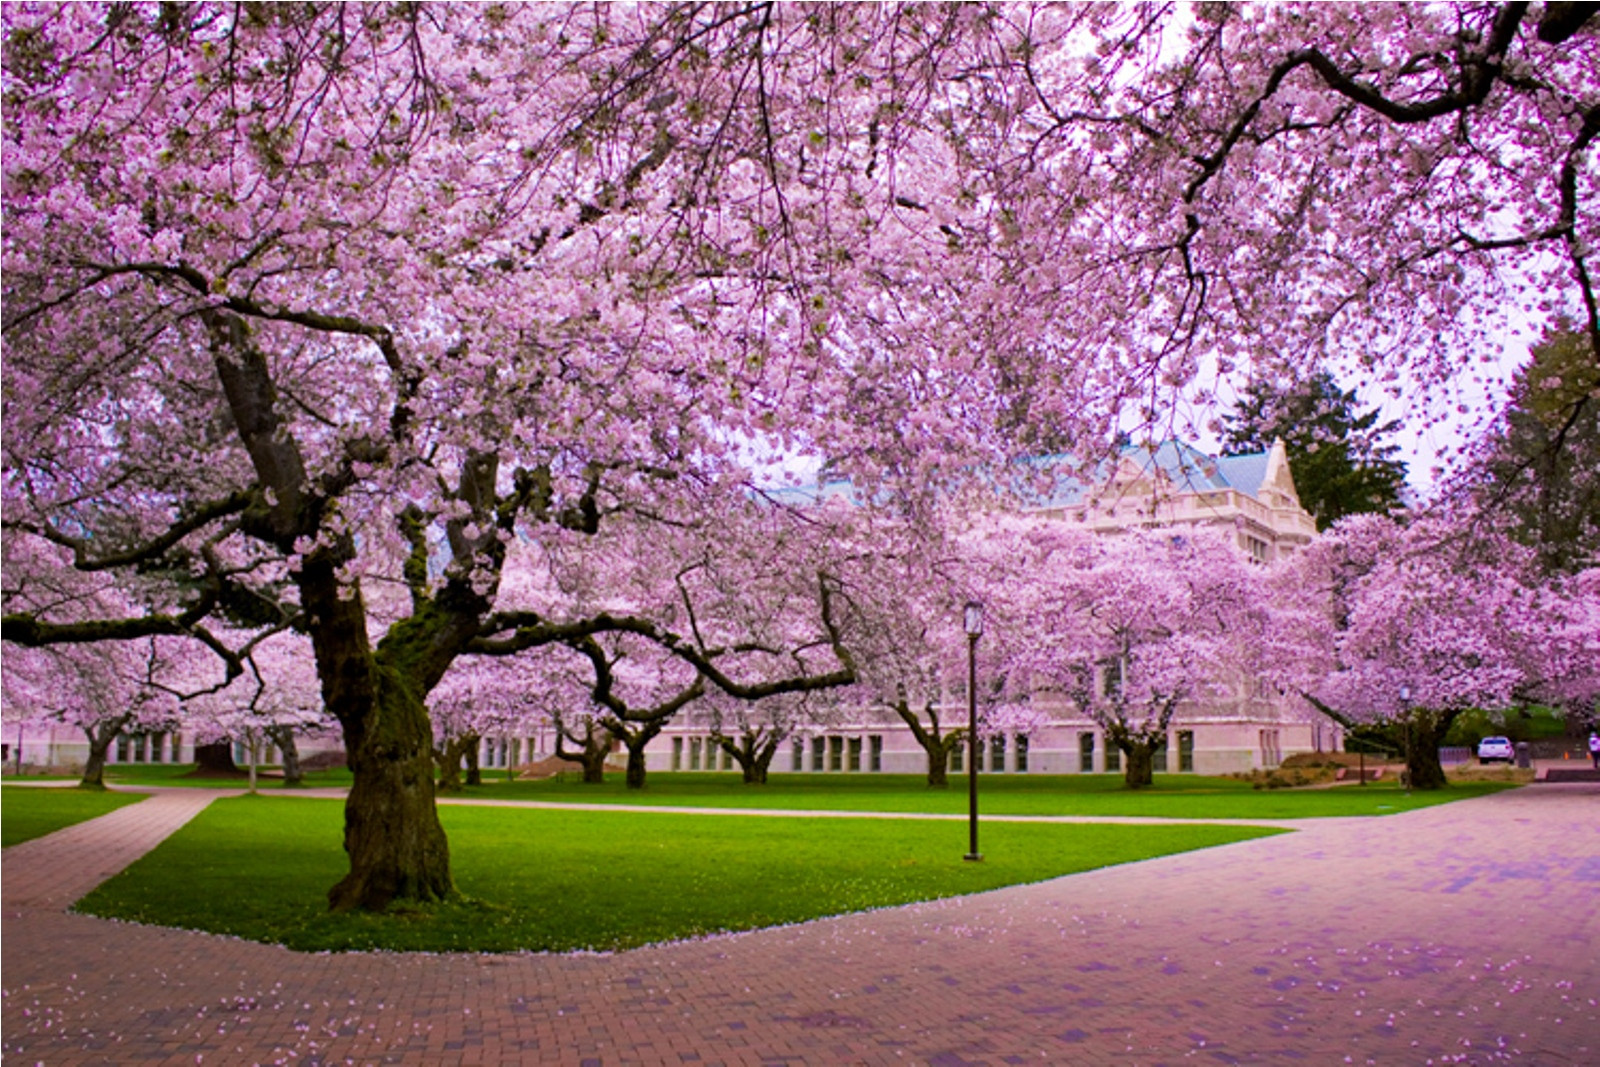 Free Download Cherry Blossom Wallpaper Desktop Background Wallpapers Hd 1600x1067 For Your Desktop Mobile Tablet Explore 46 Cherry Blossom Wallpaper For Desktop Cherry Blossom Wallpapers Cherry Blossom Wallpaper For